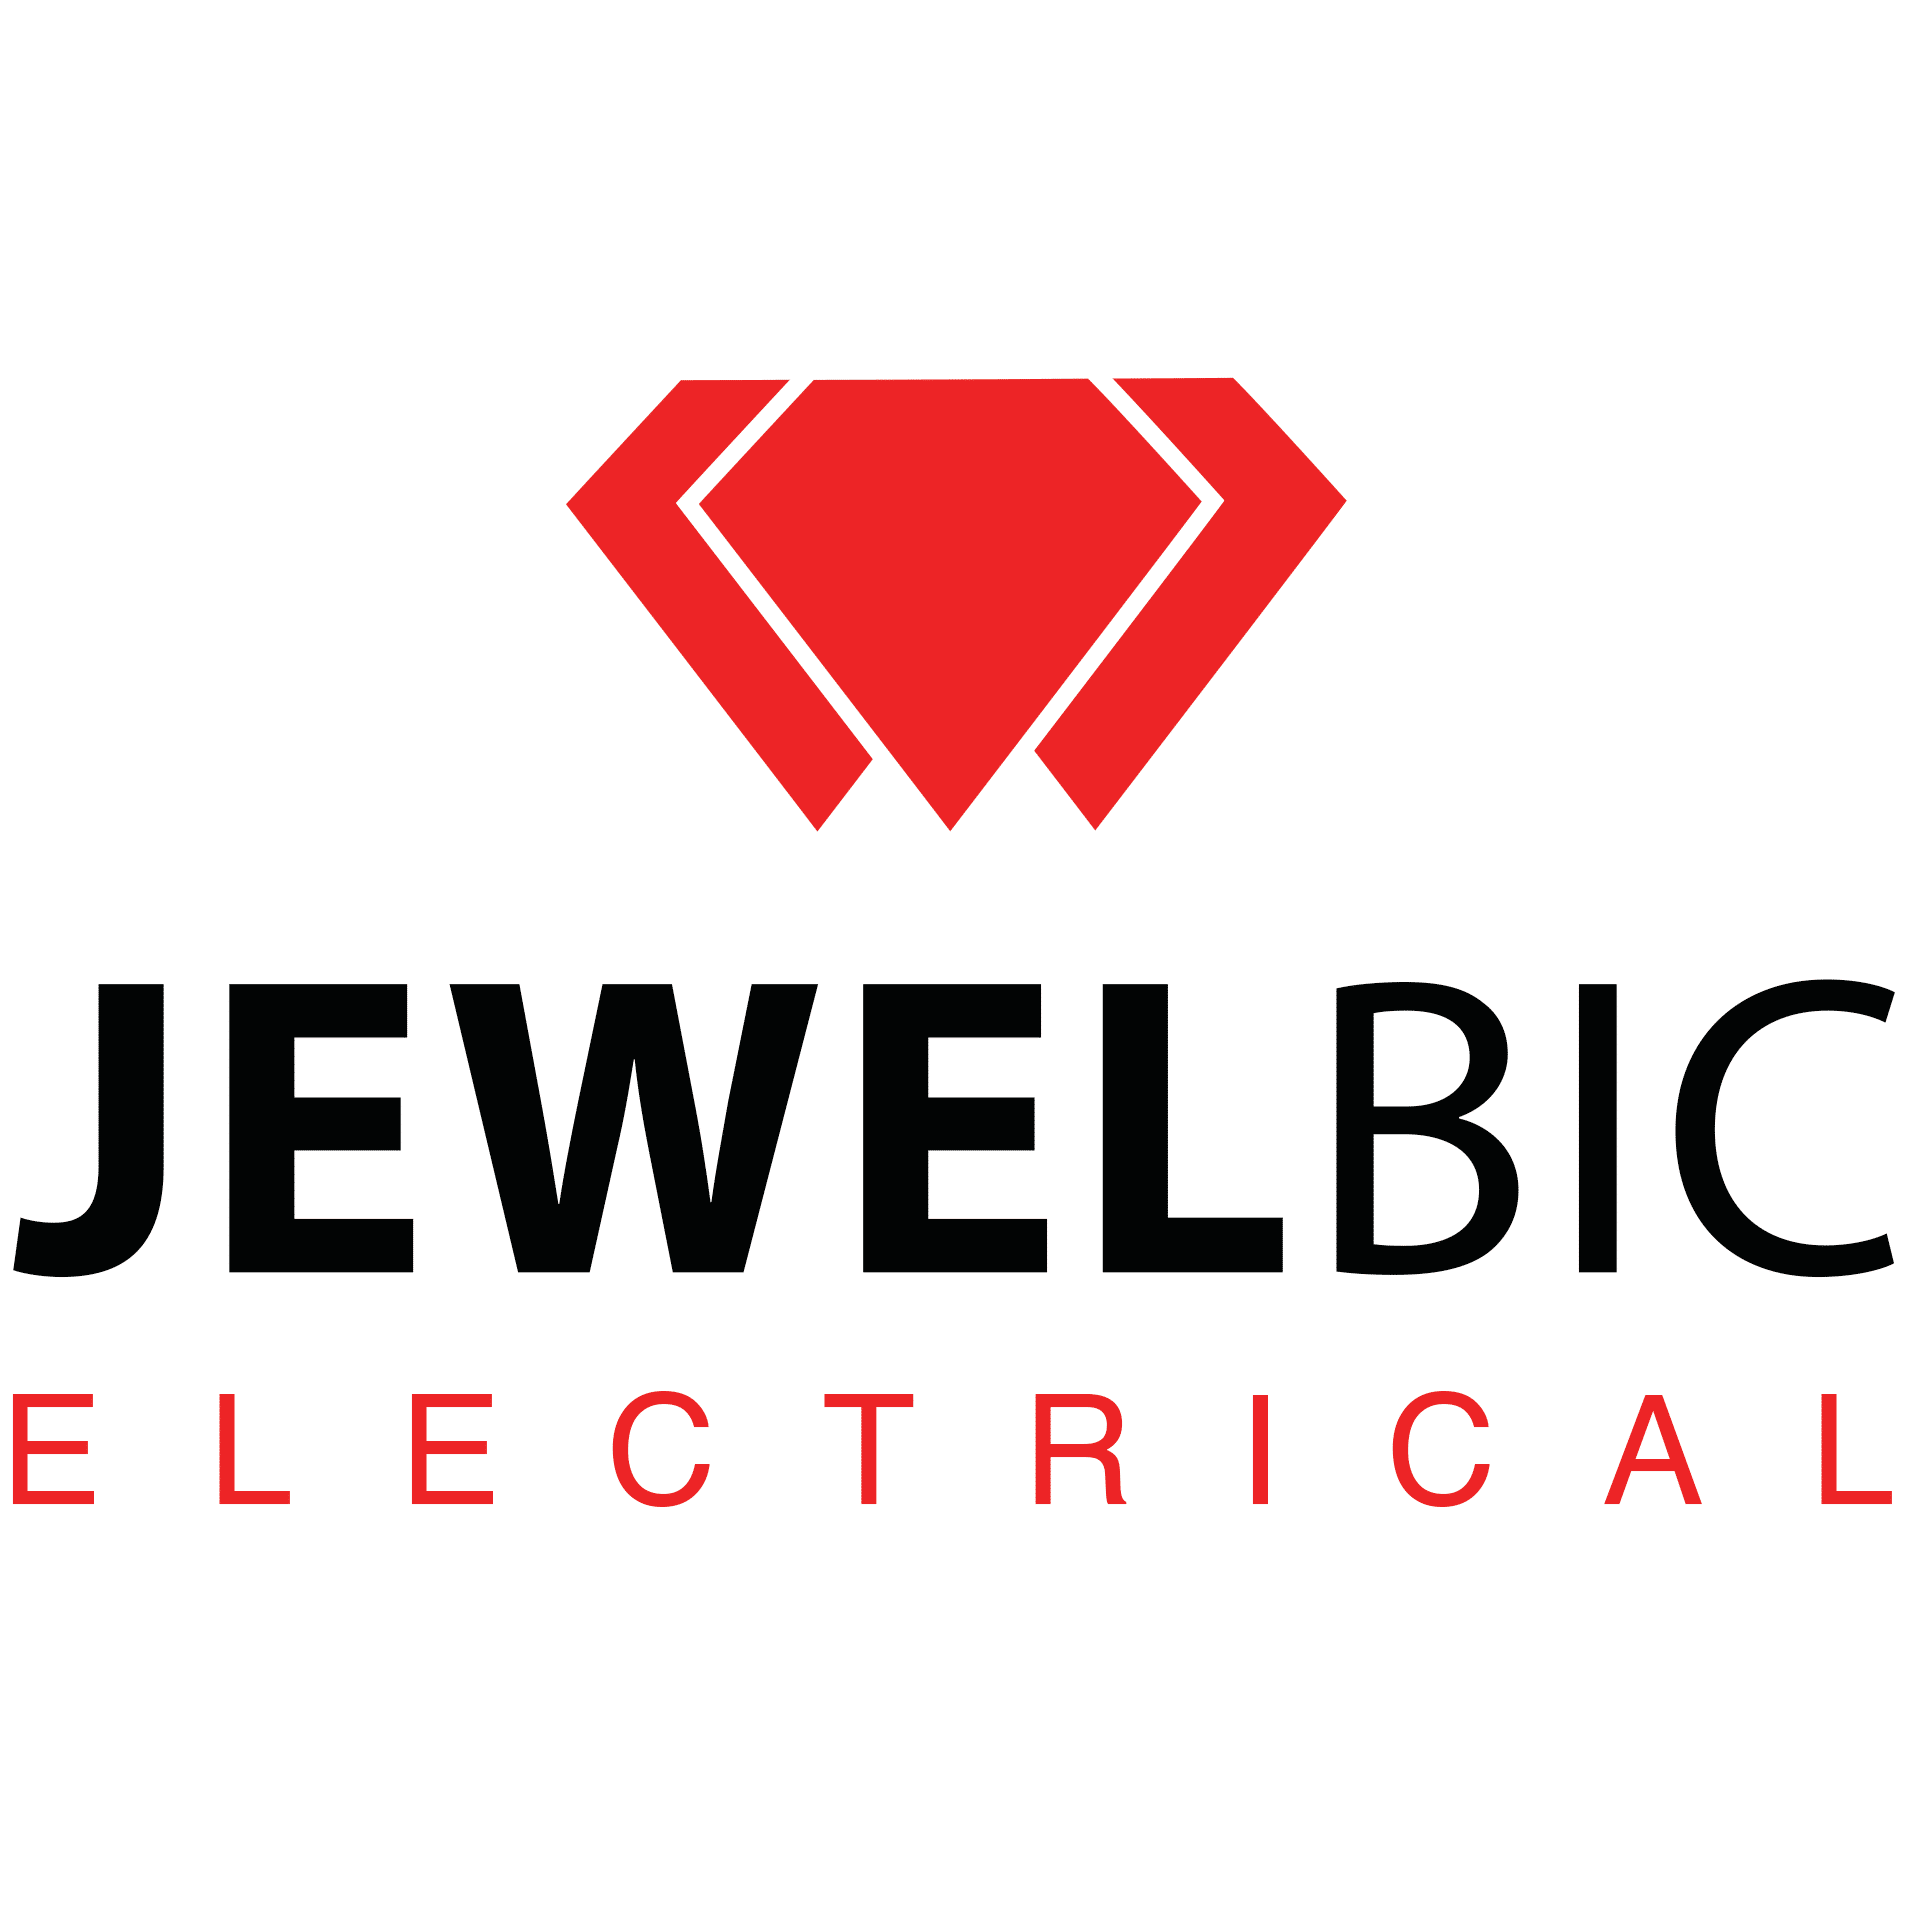 Jewelbic Electrical